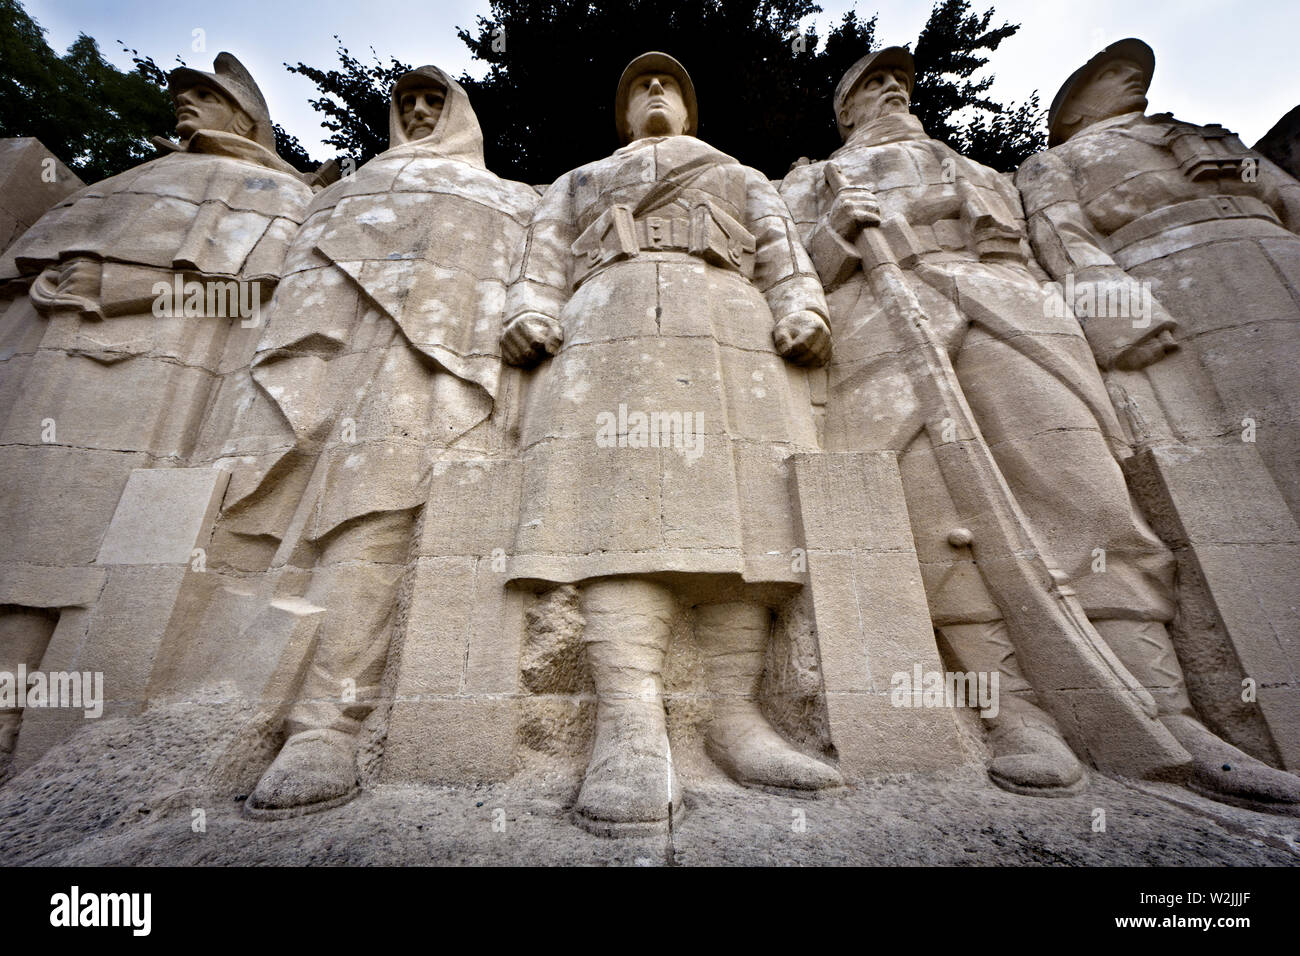 "The ""Monument aux morts de Verdun"" (Monument to the Dead of Verdun). Verdun, Meuse department, Grand Est region, France, Europe. Stock Photo"